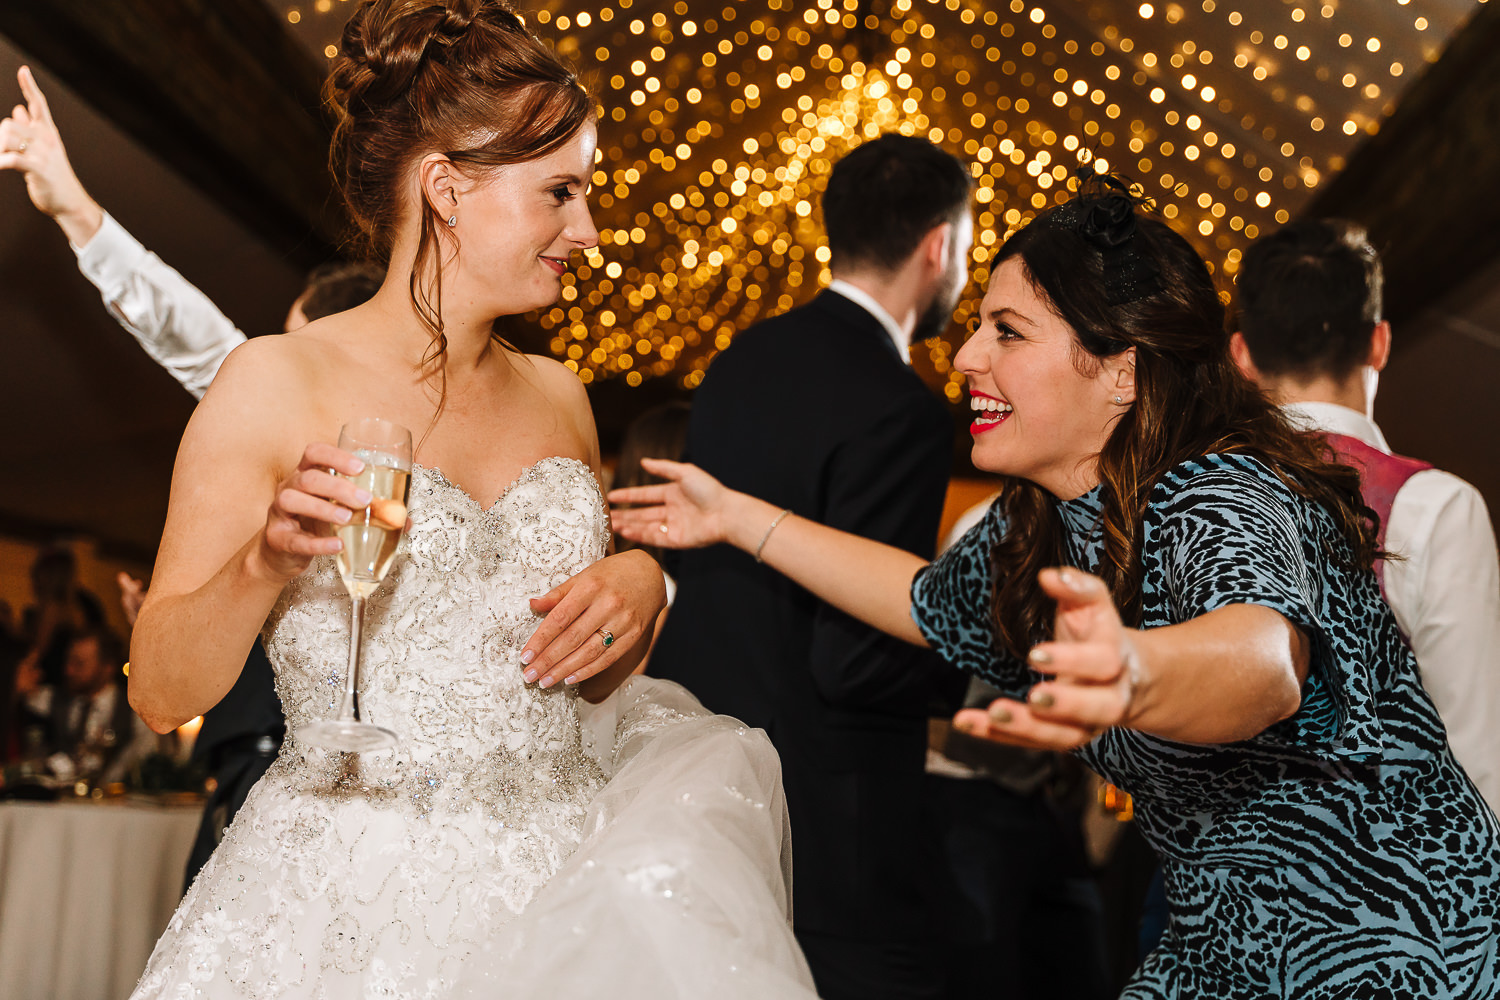 Female guest and the bride dancing